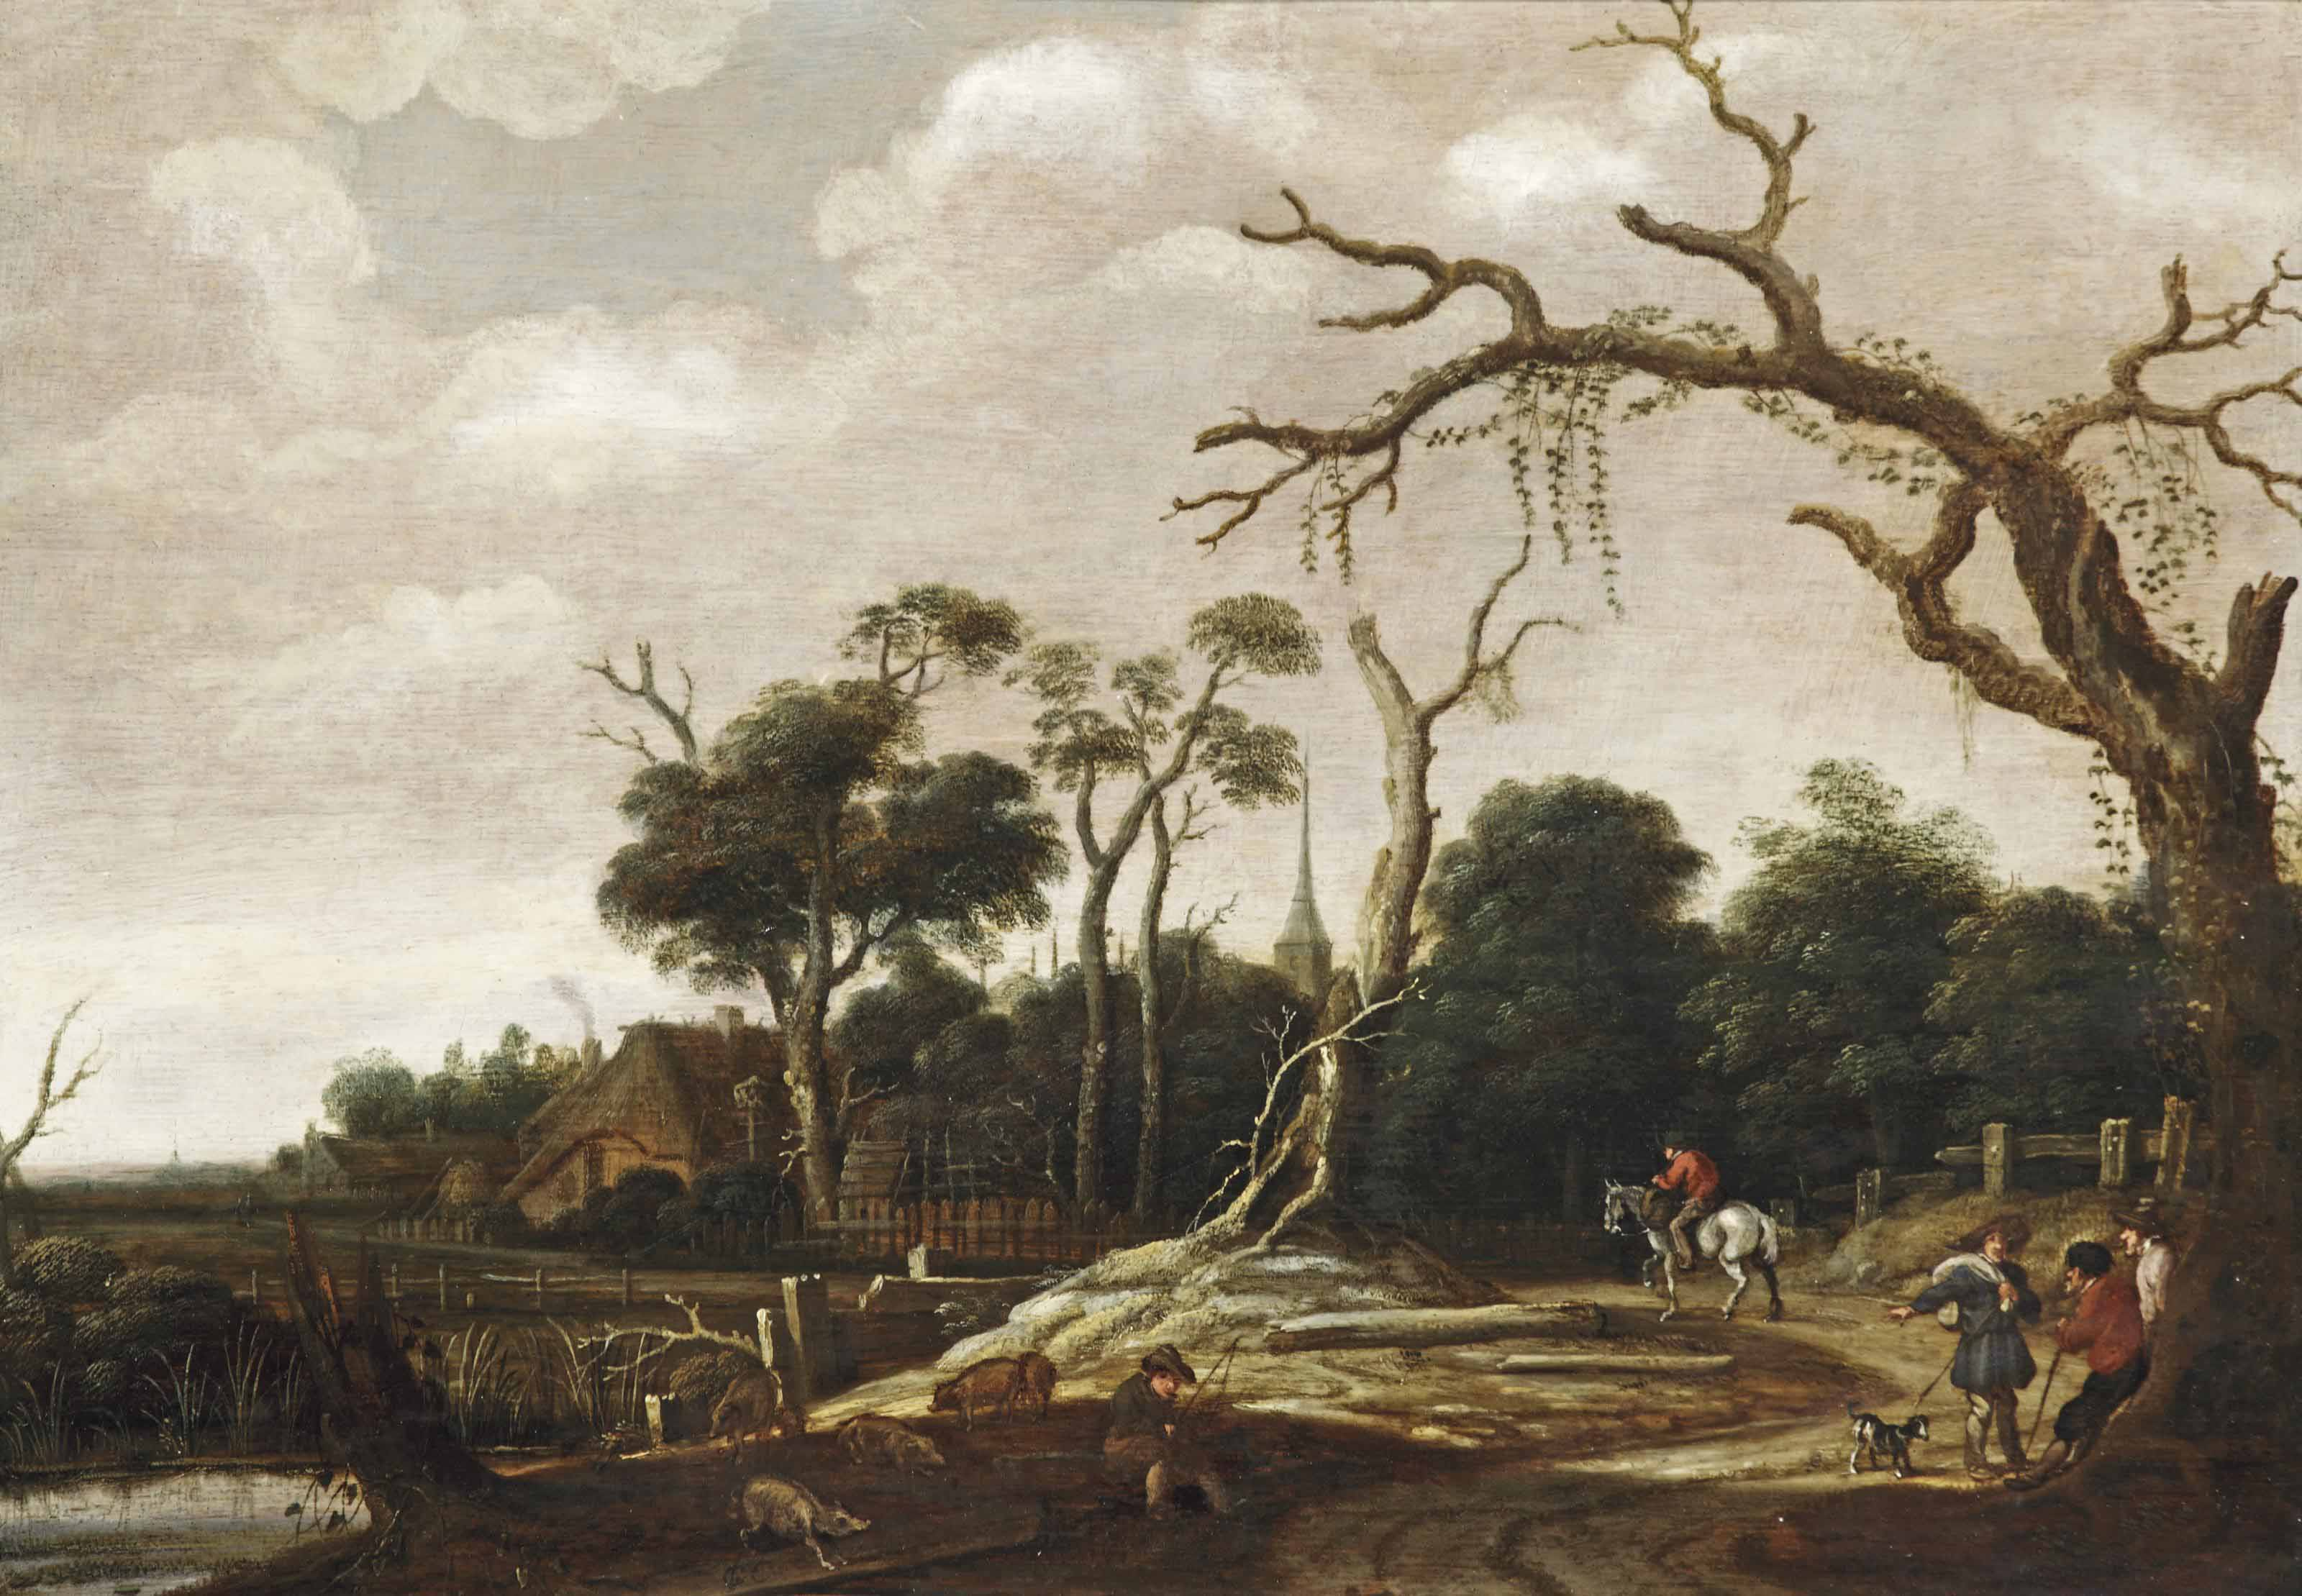 A wooded landscape with travellers on a road, a swineherd near the river bank and a village beyond